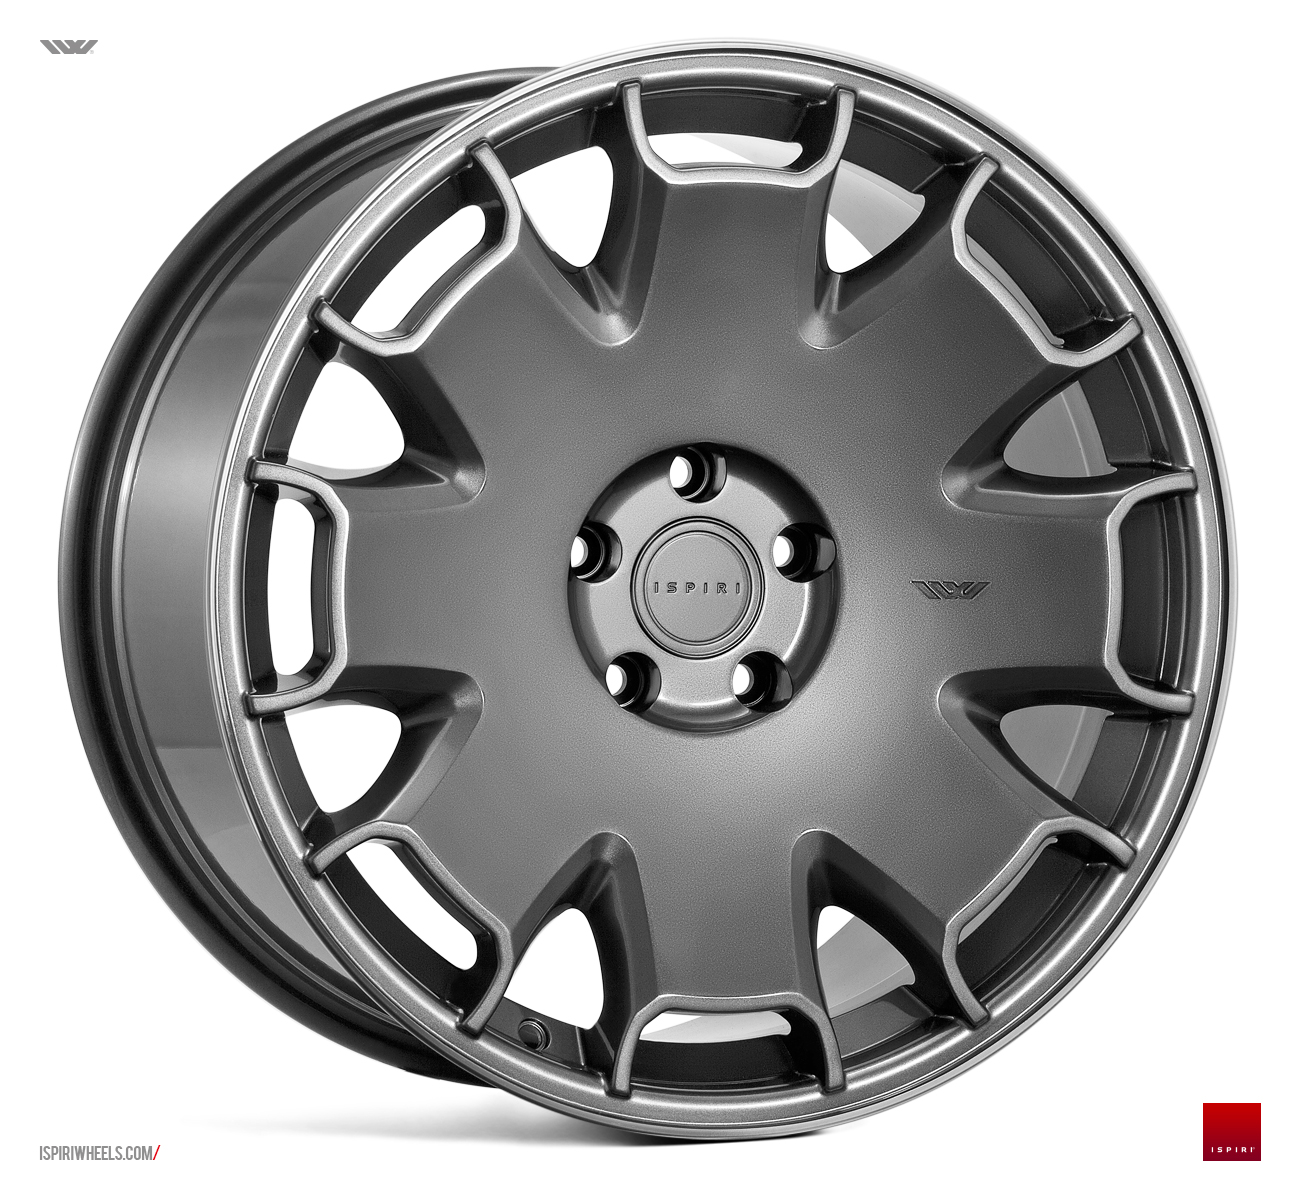 "NEW 18"" ISPIRI CSR2 ALLOY WHEELS IN CARBON GRAPHITE WITH POLISHED LIP et42/42"